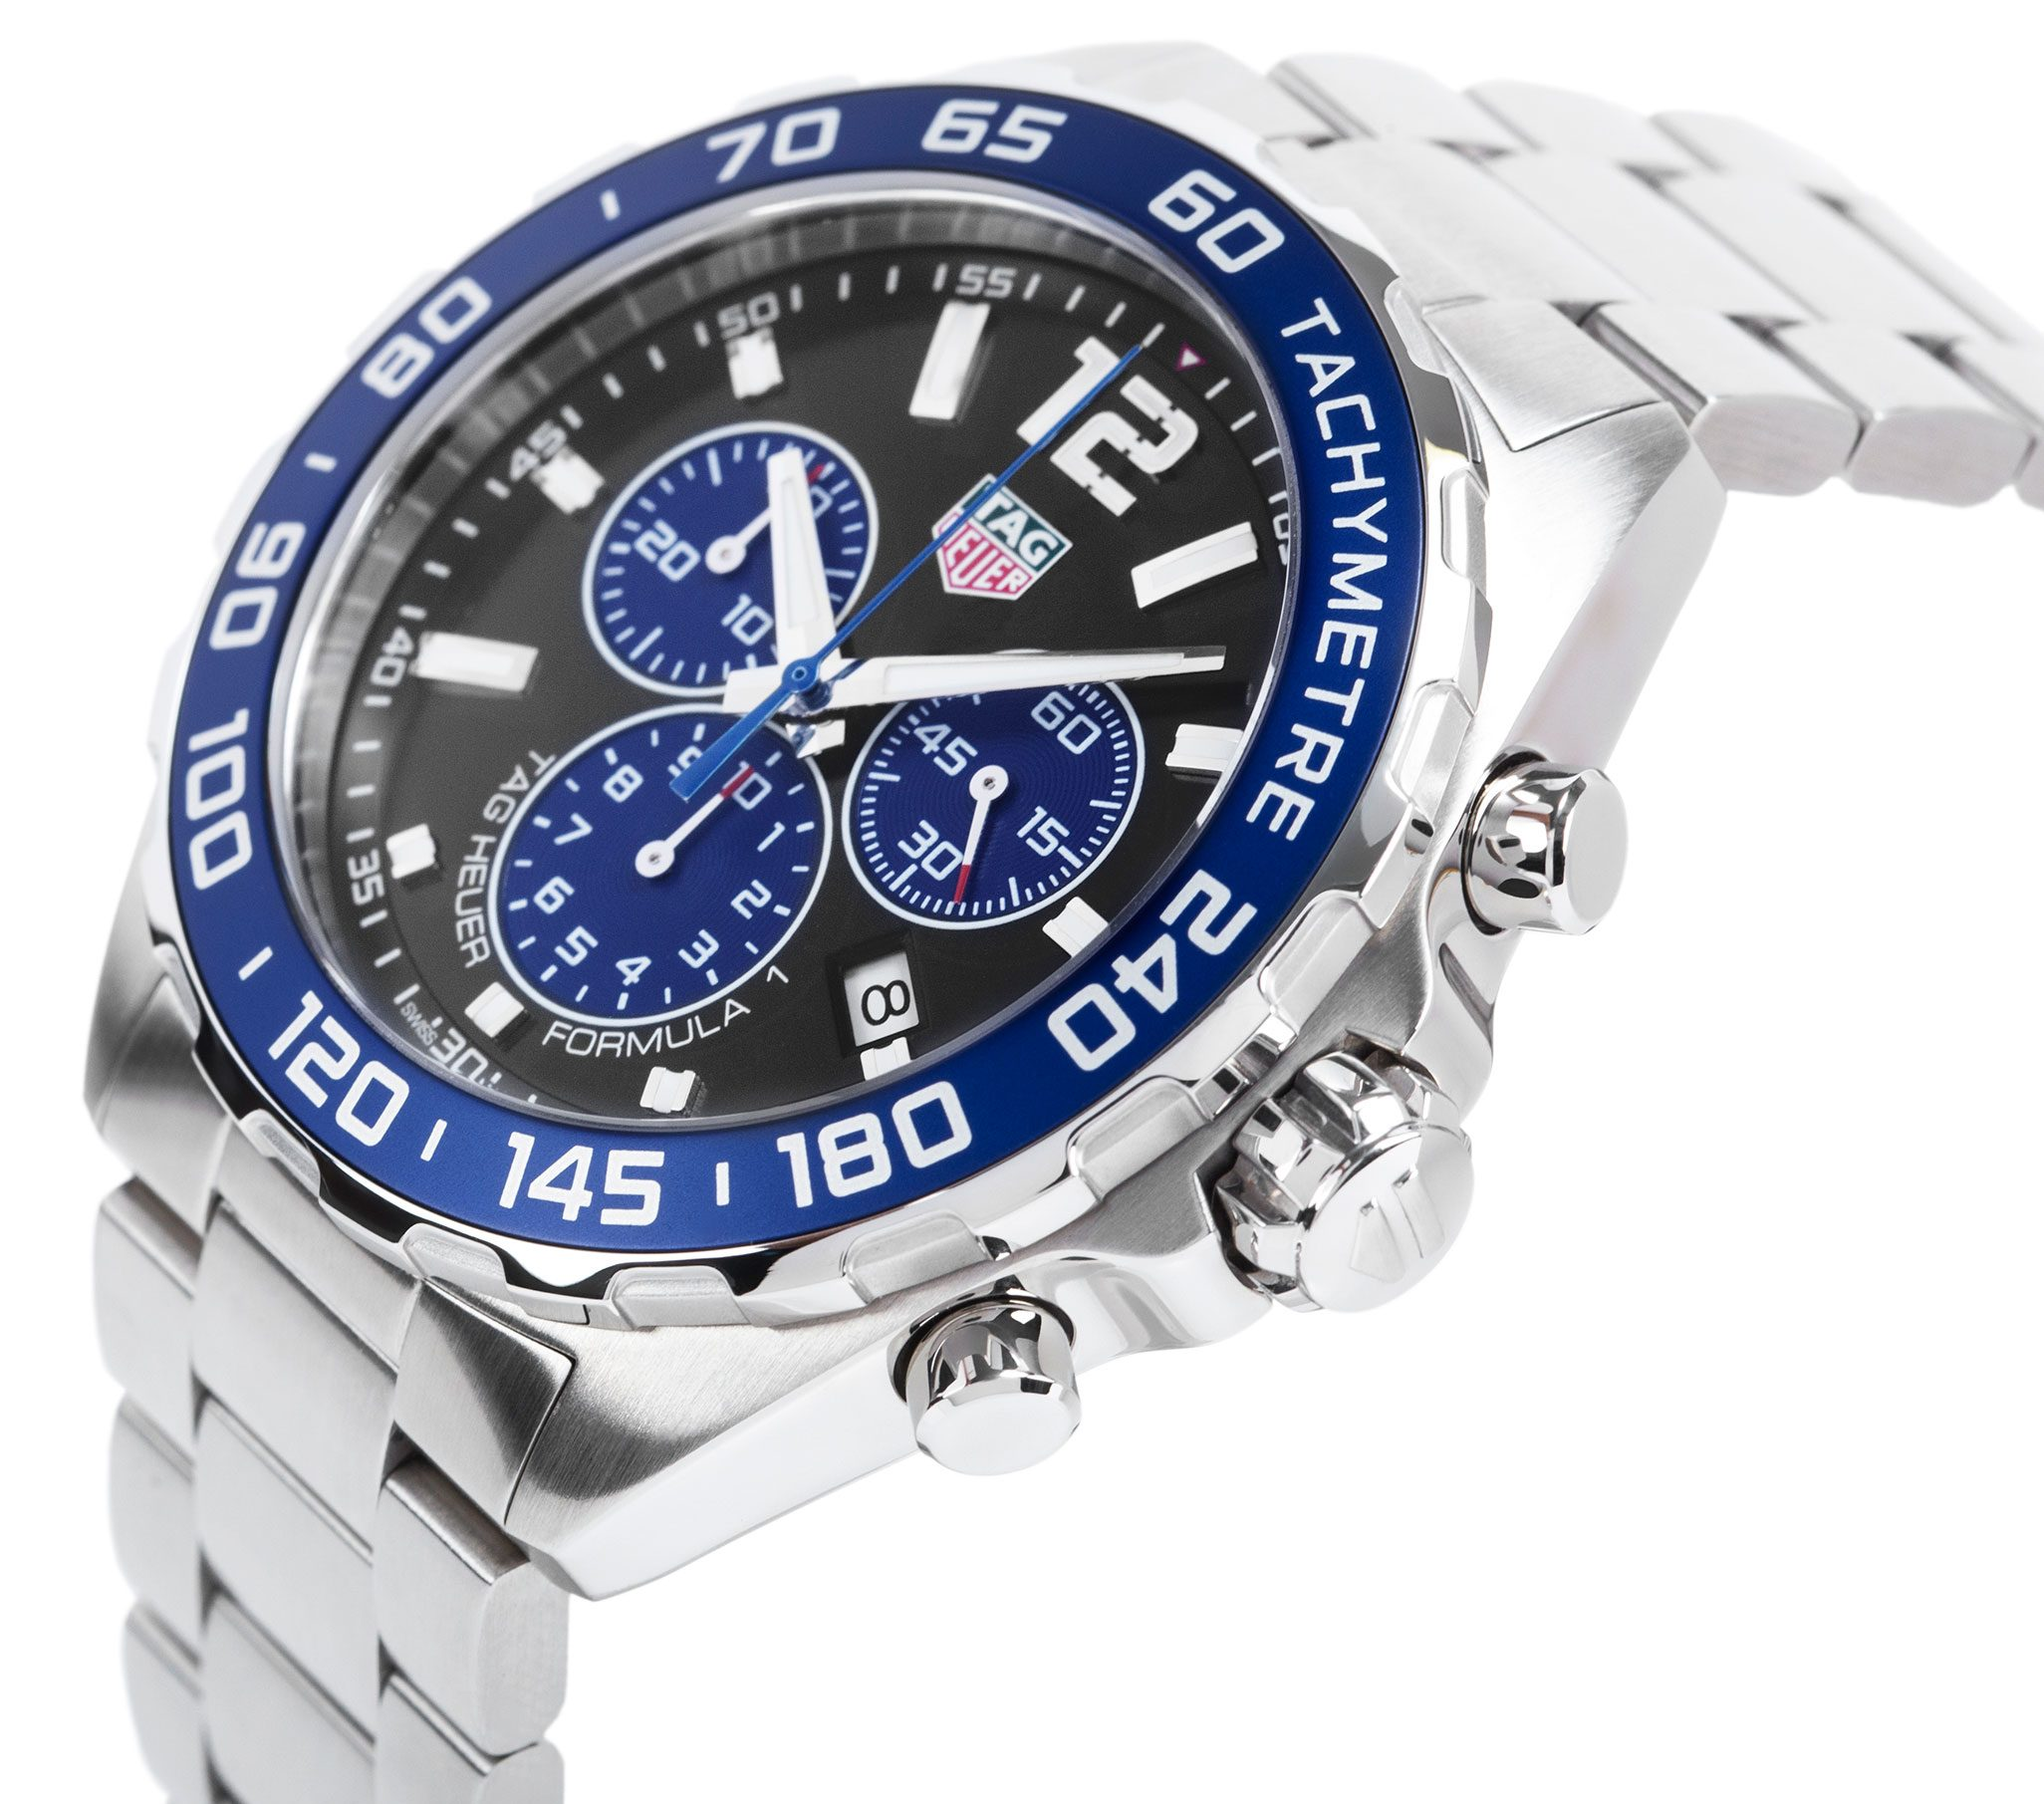 WATCH GALLERY LIMITED EDITION PARTNERSHIP WITH TAG HEUER